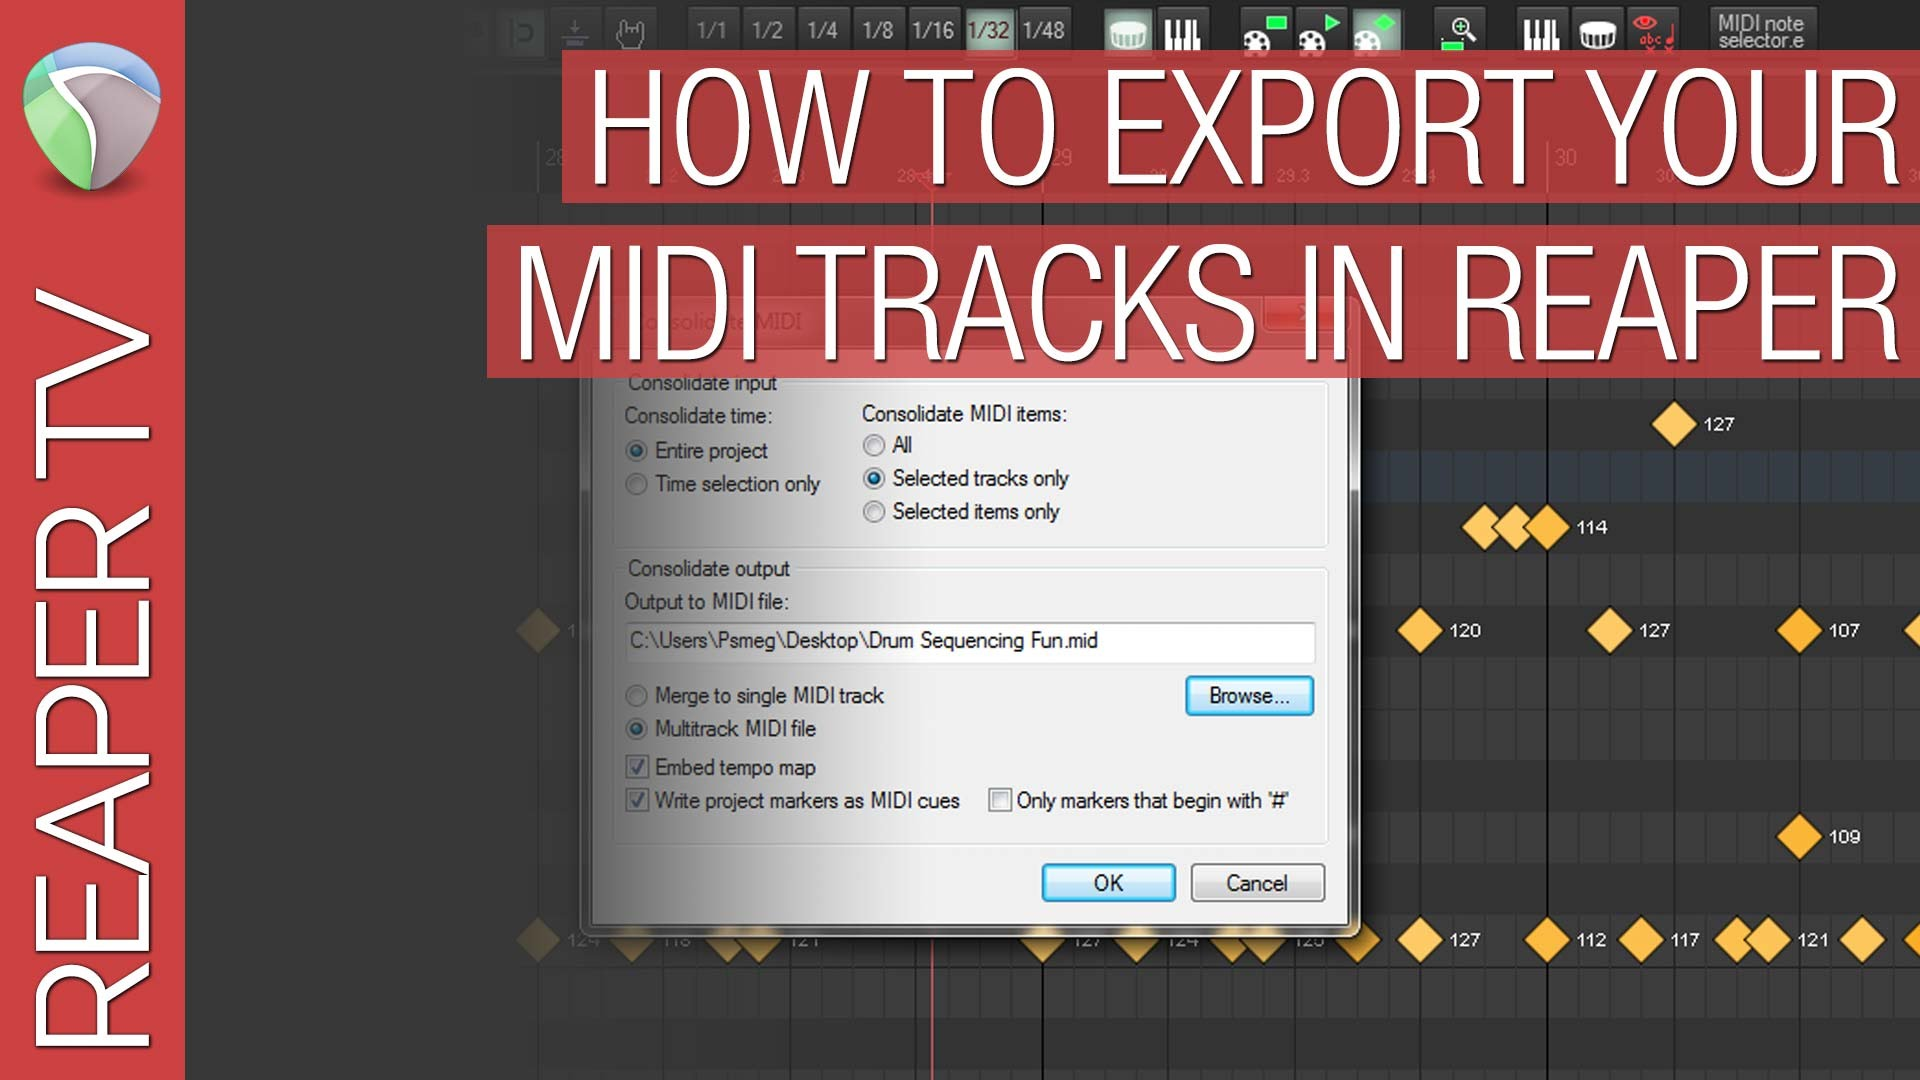 How To Export & Consolidate your Midi Tracks in Reaper